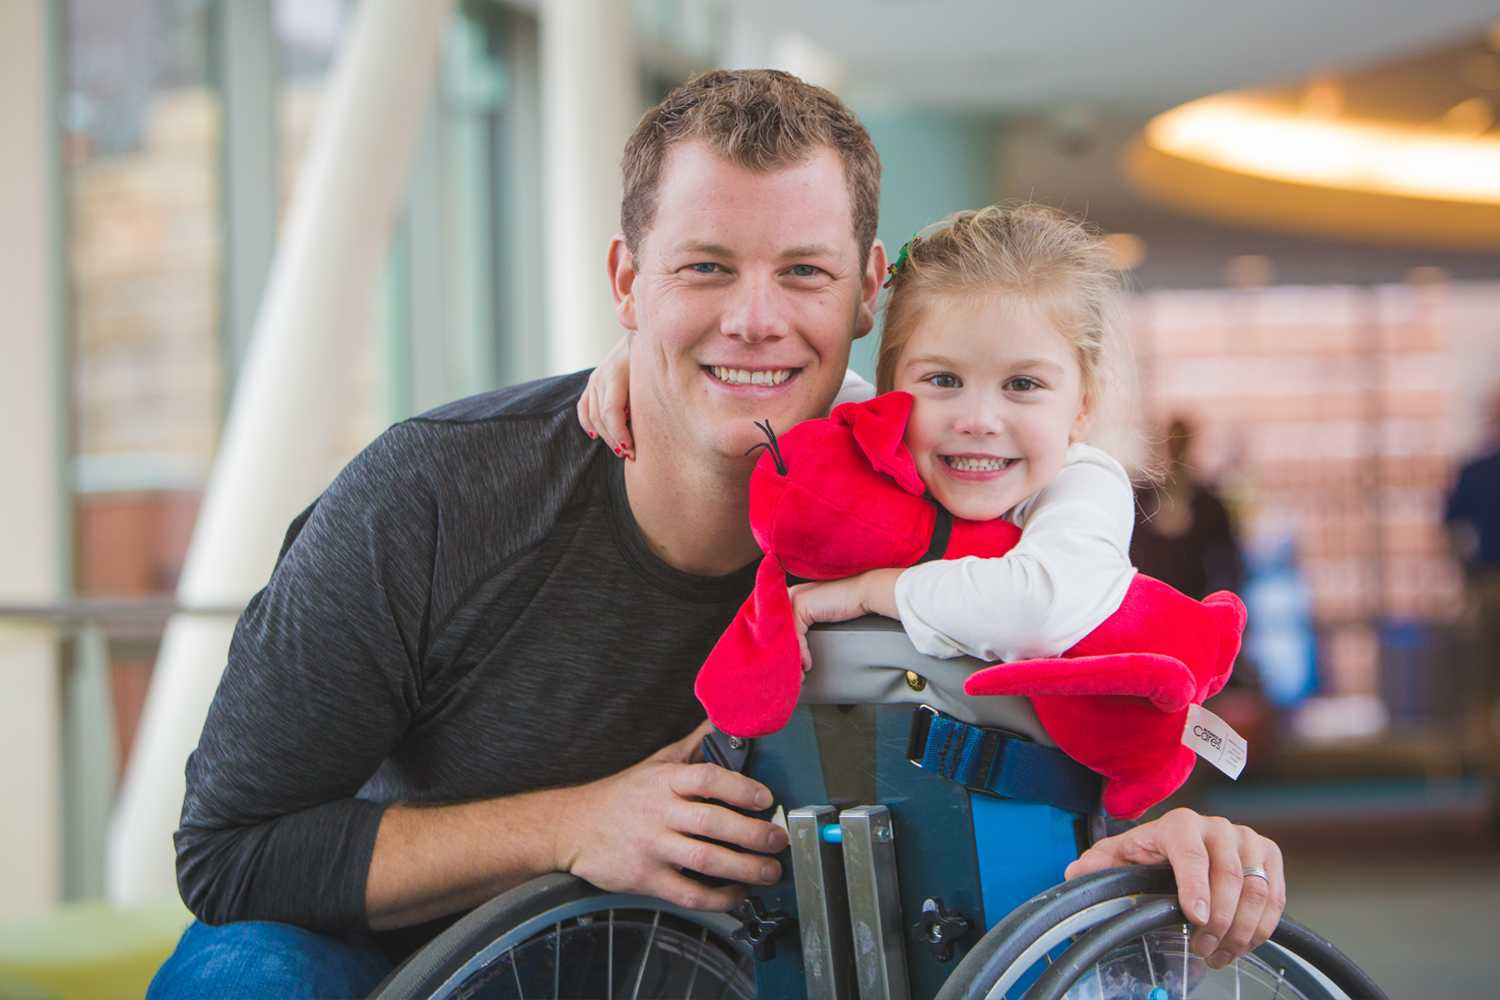 Gillette patient Teddy Bailey with her dad